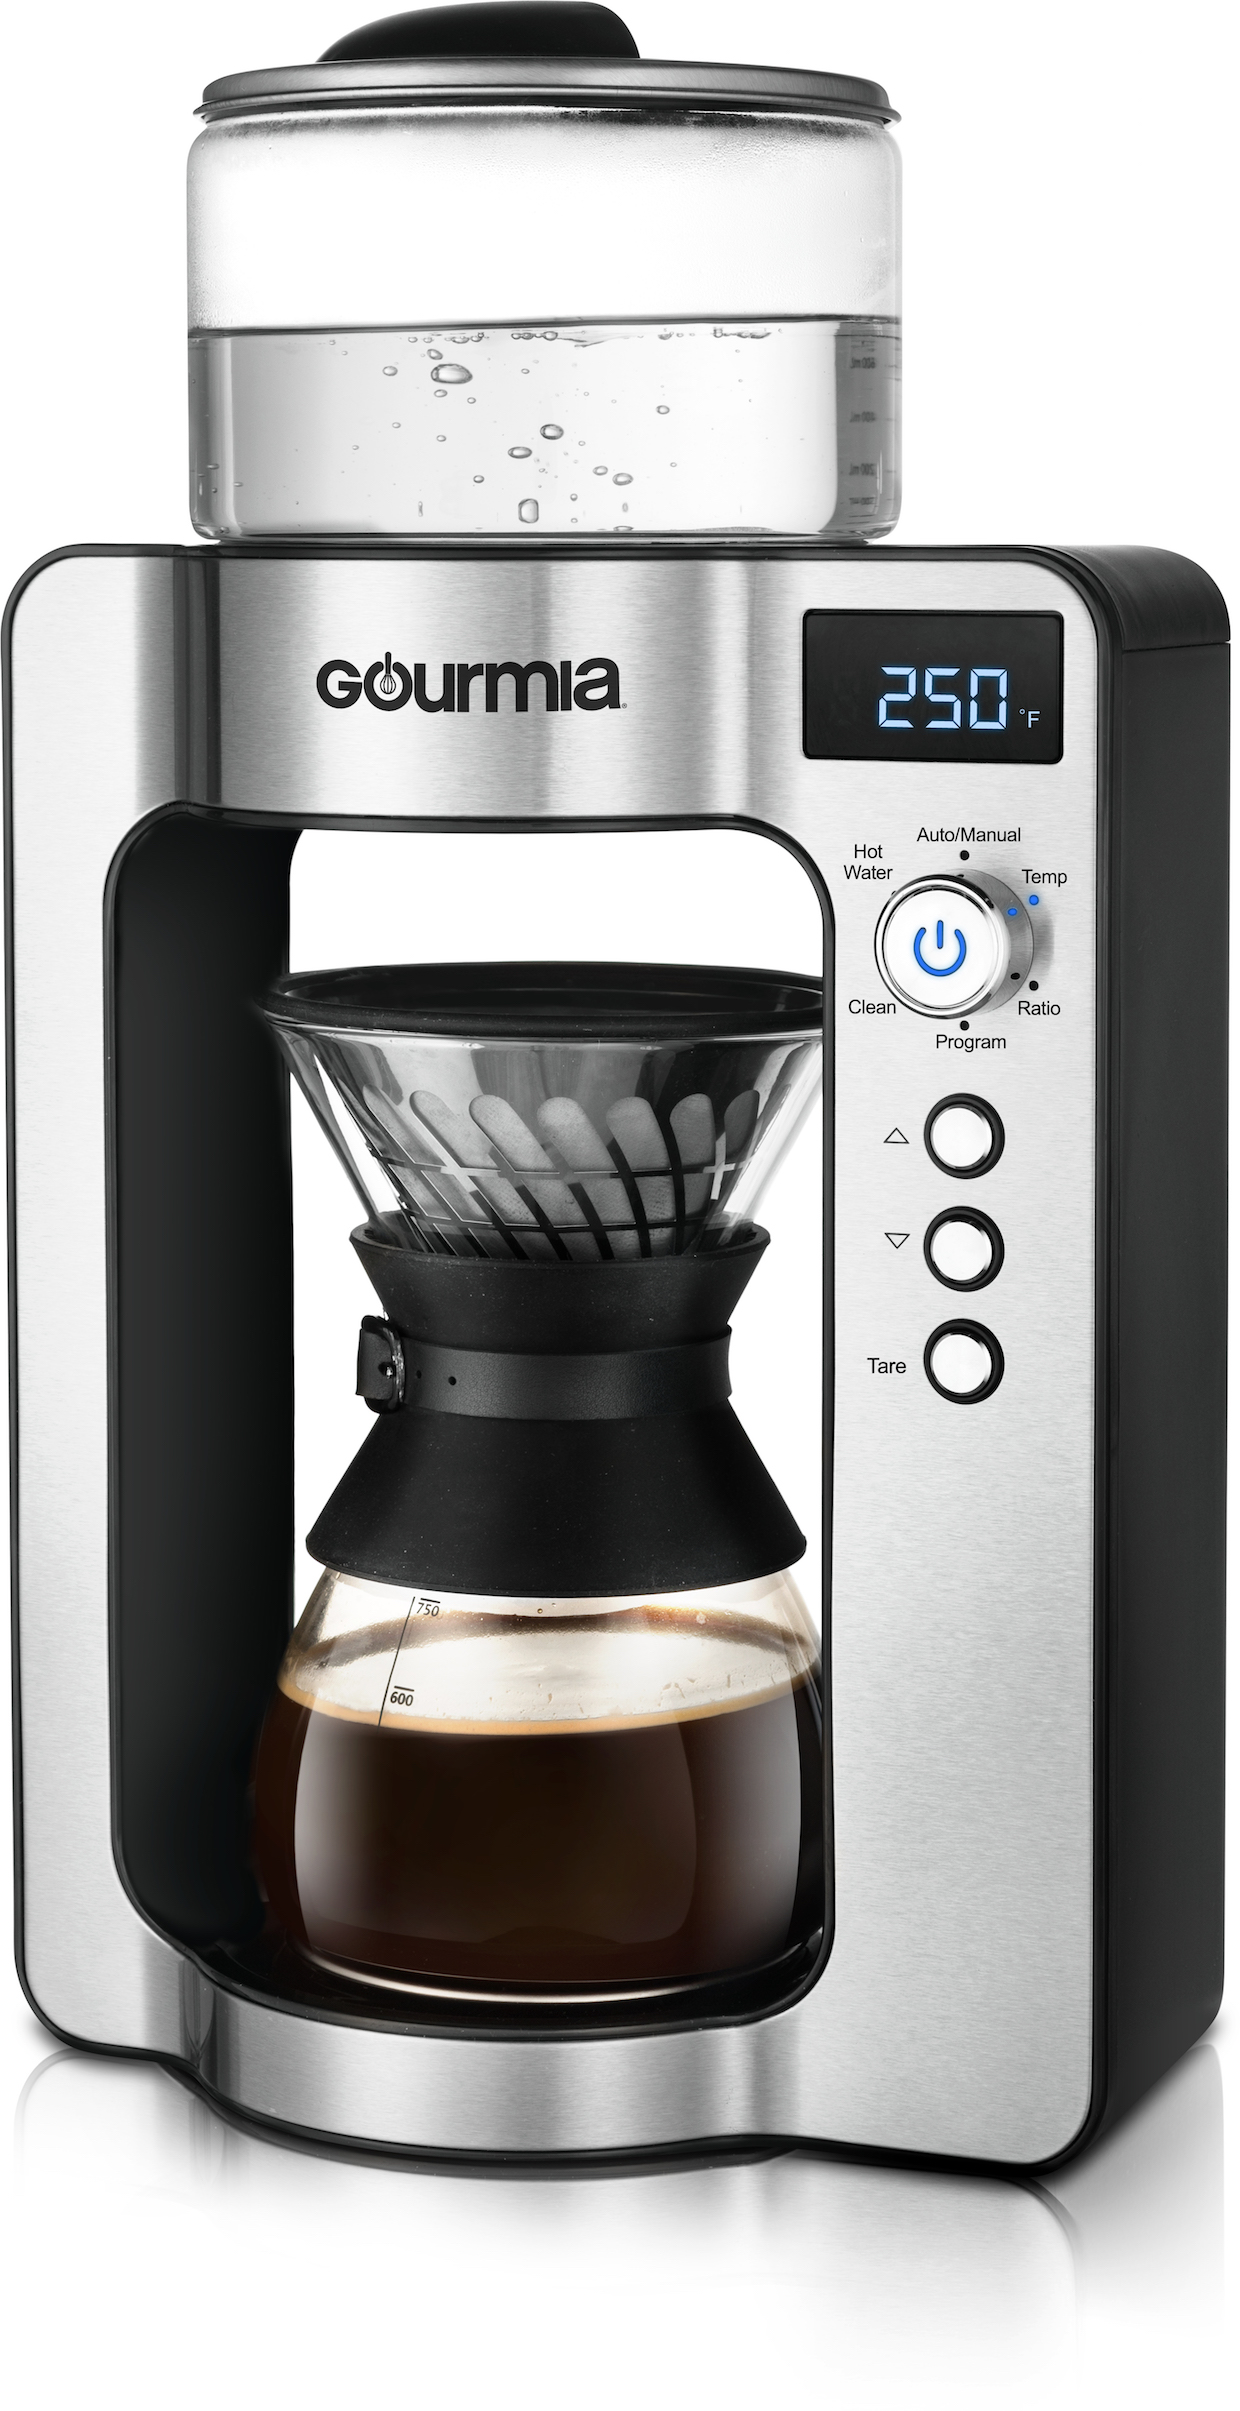 Gourmia coffee home brewing pourover